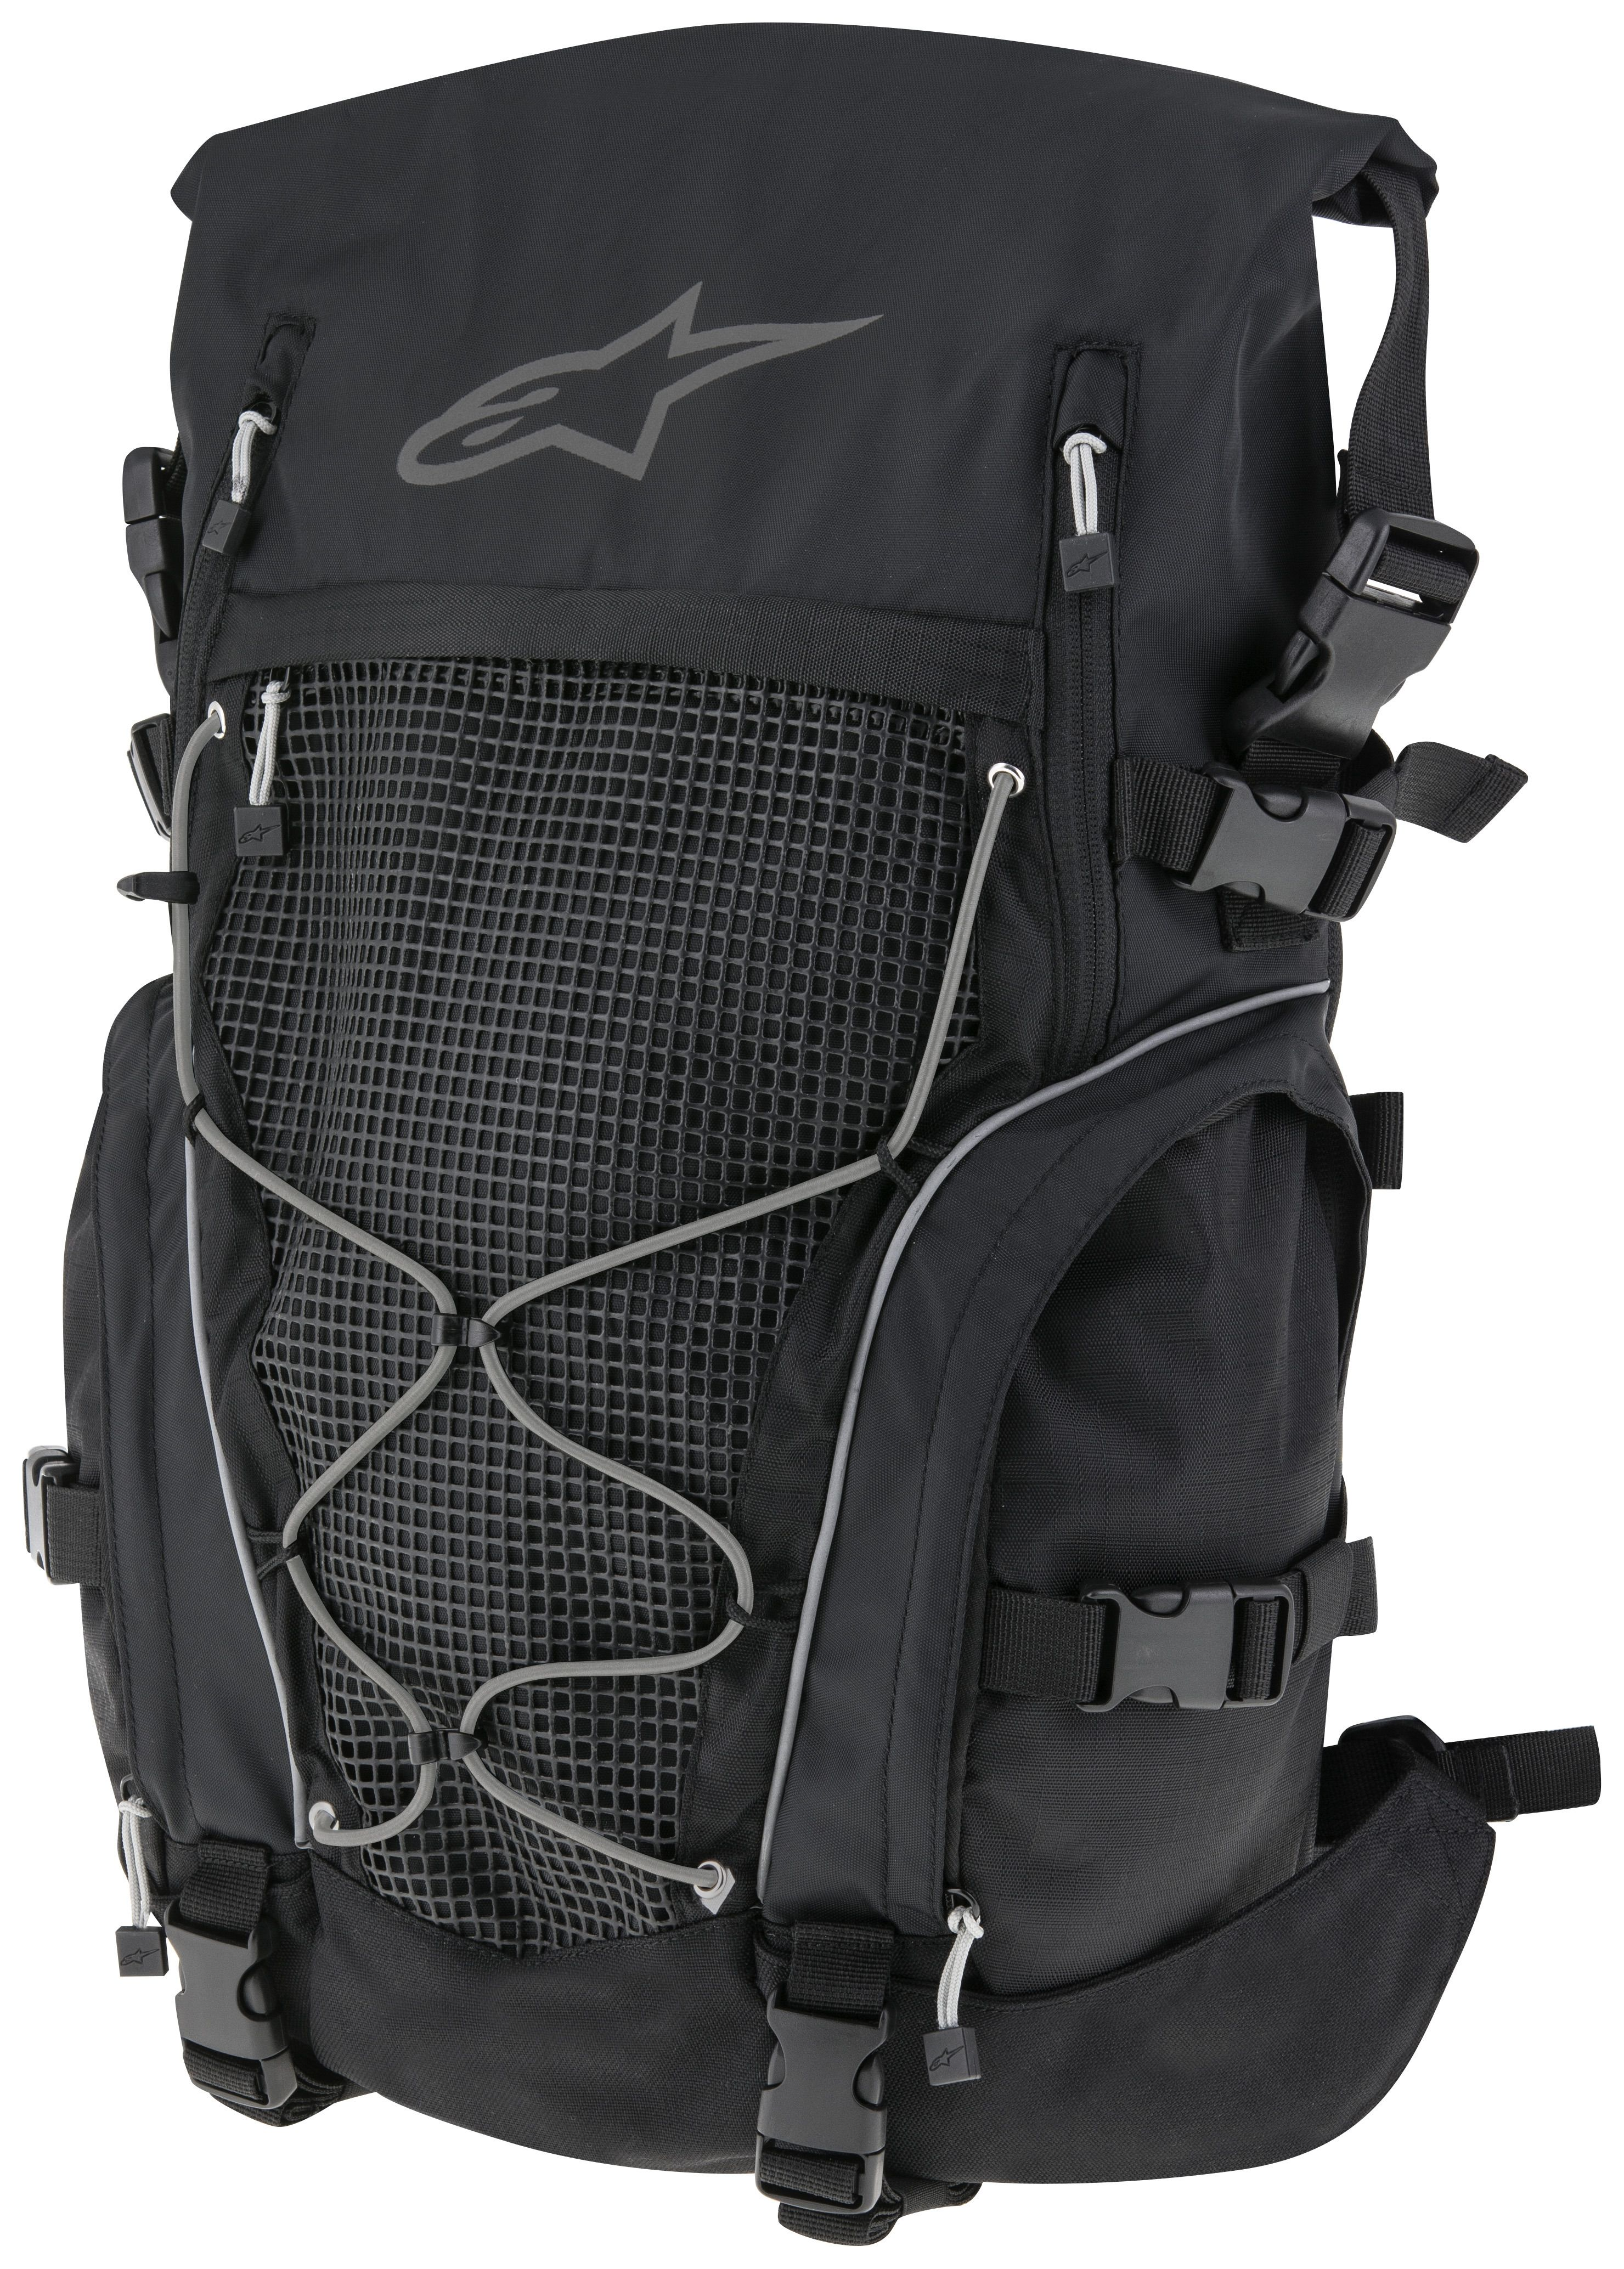 Ogio Mach 5 >> Alpinestars Force 25 Backpack - Cycle Gear